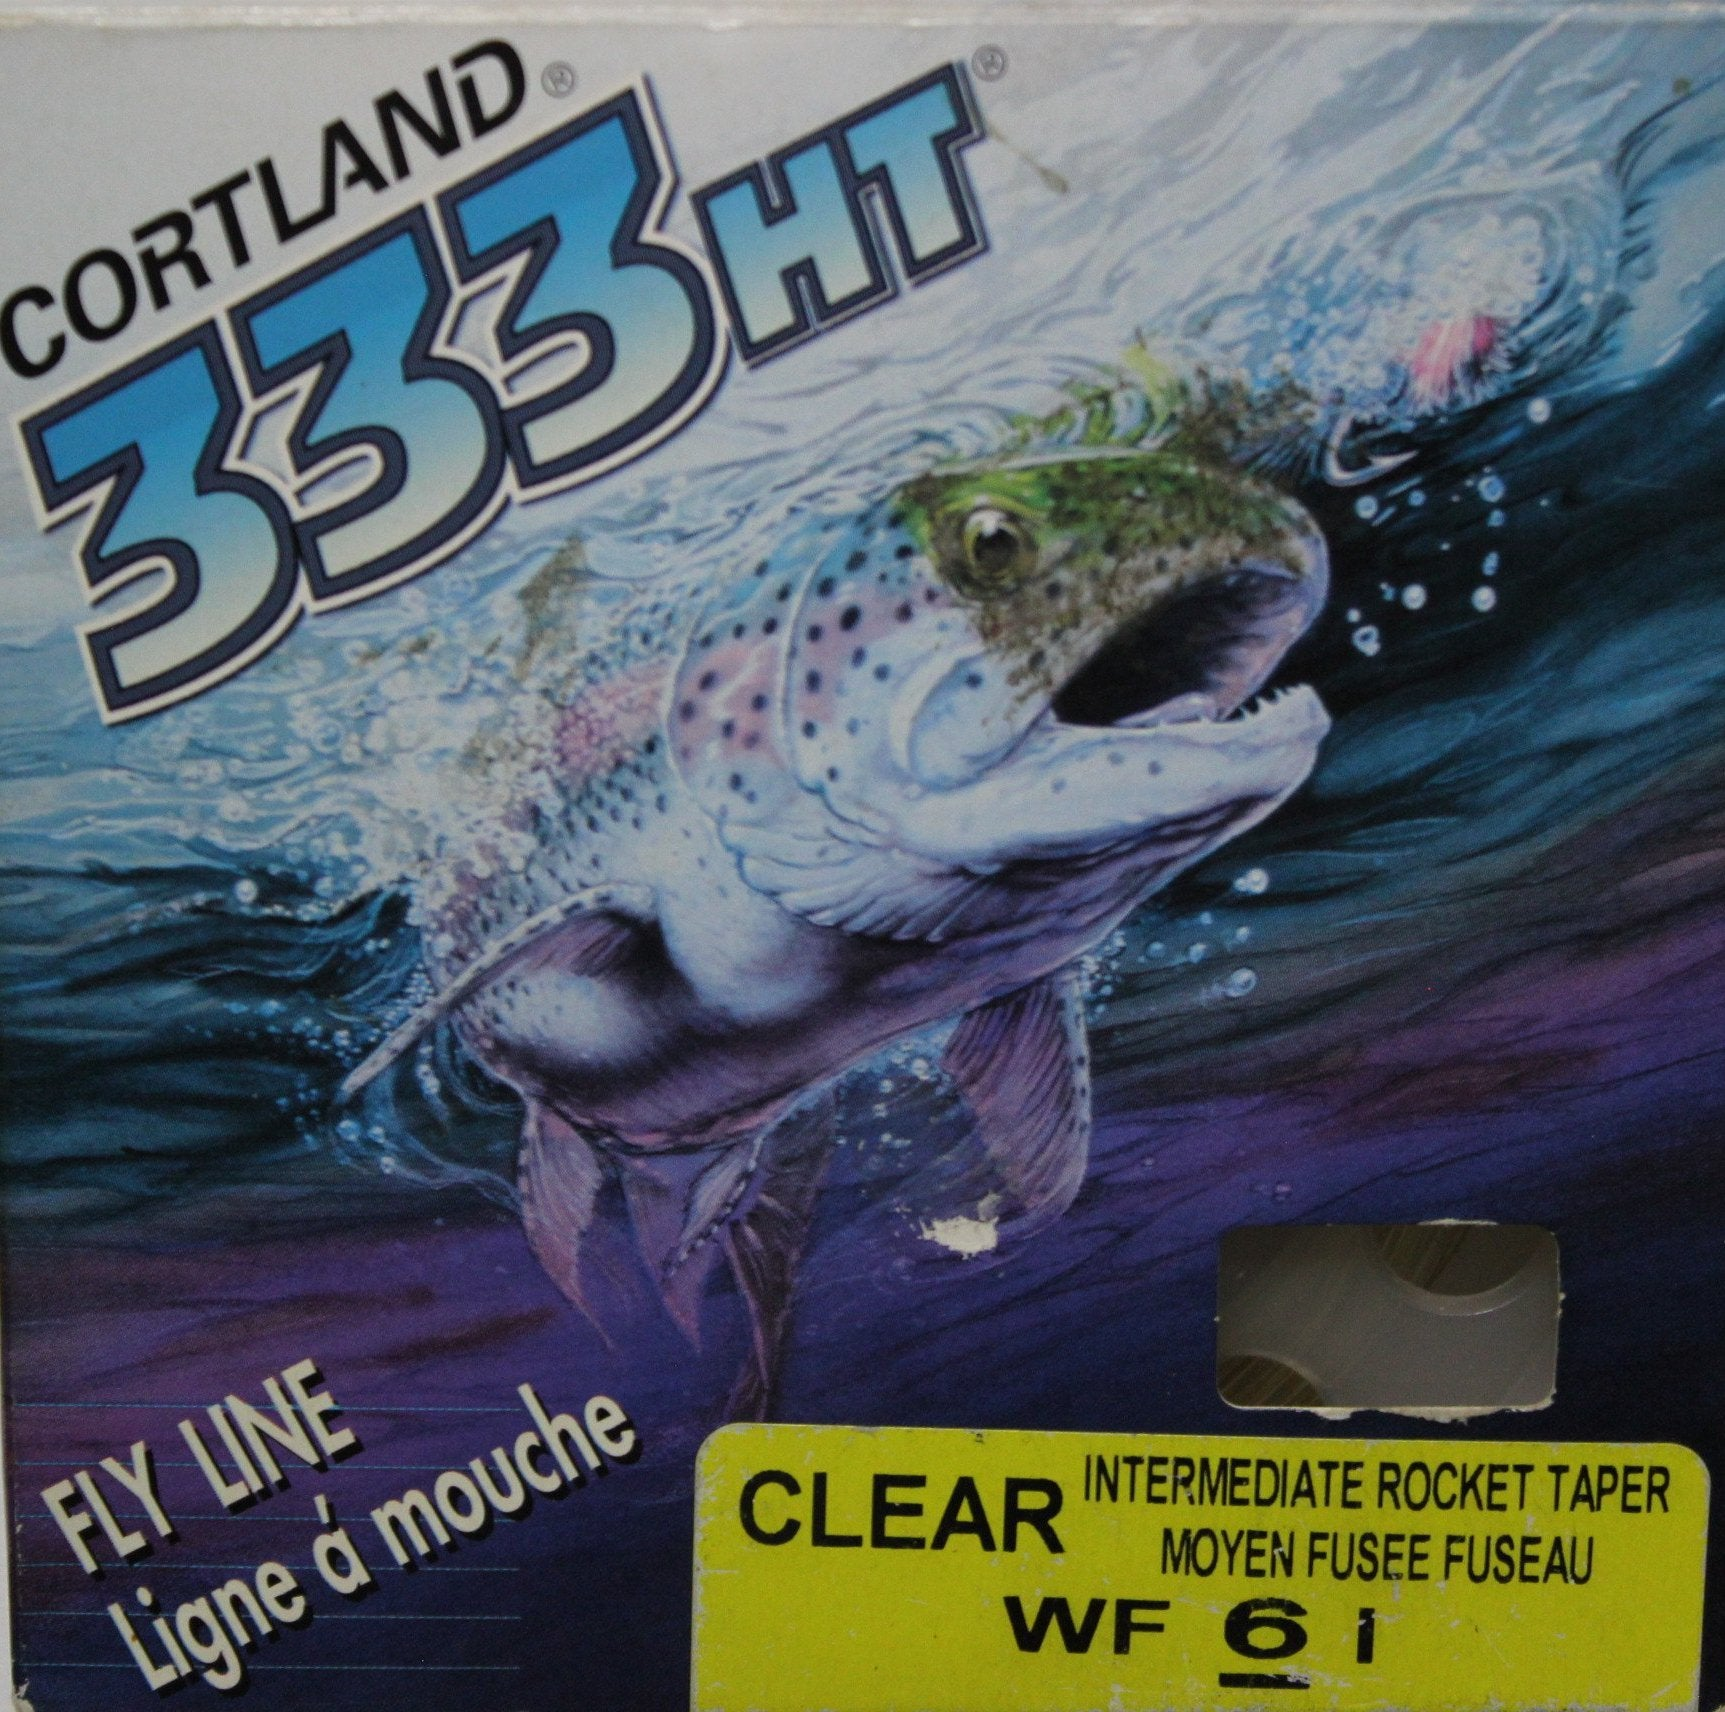 CLEARANCE - Cortland 333HT Fly Line WF6I colour Clear